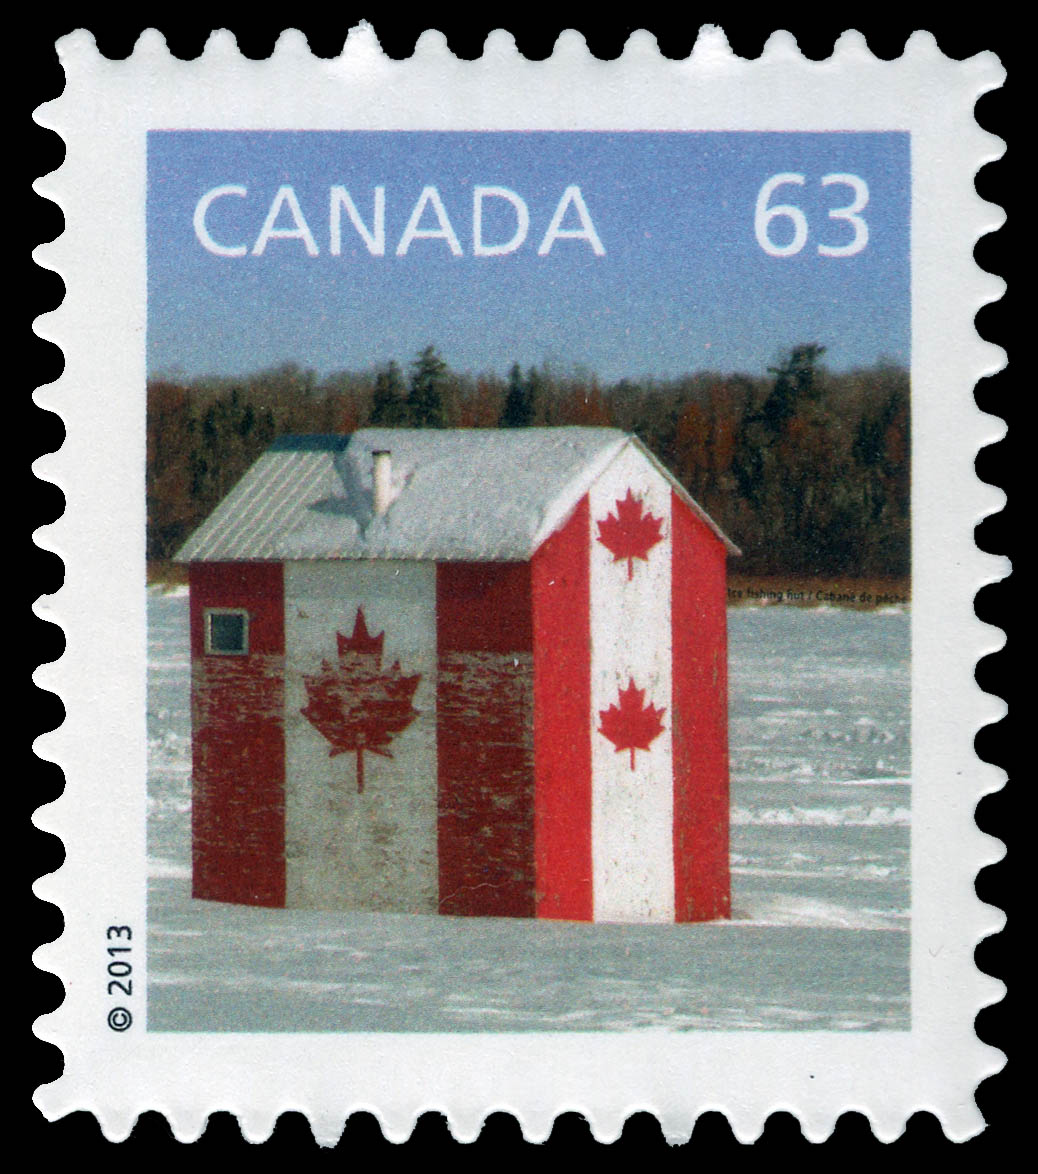 Ice Fishing Hut Flag Design Canada Postage Stamp